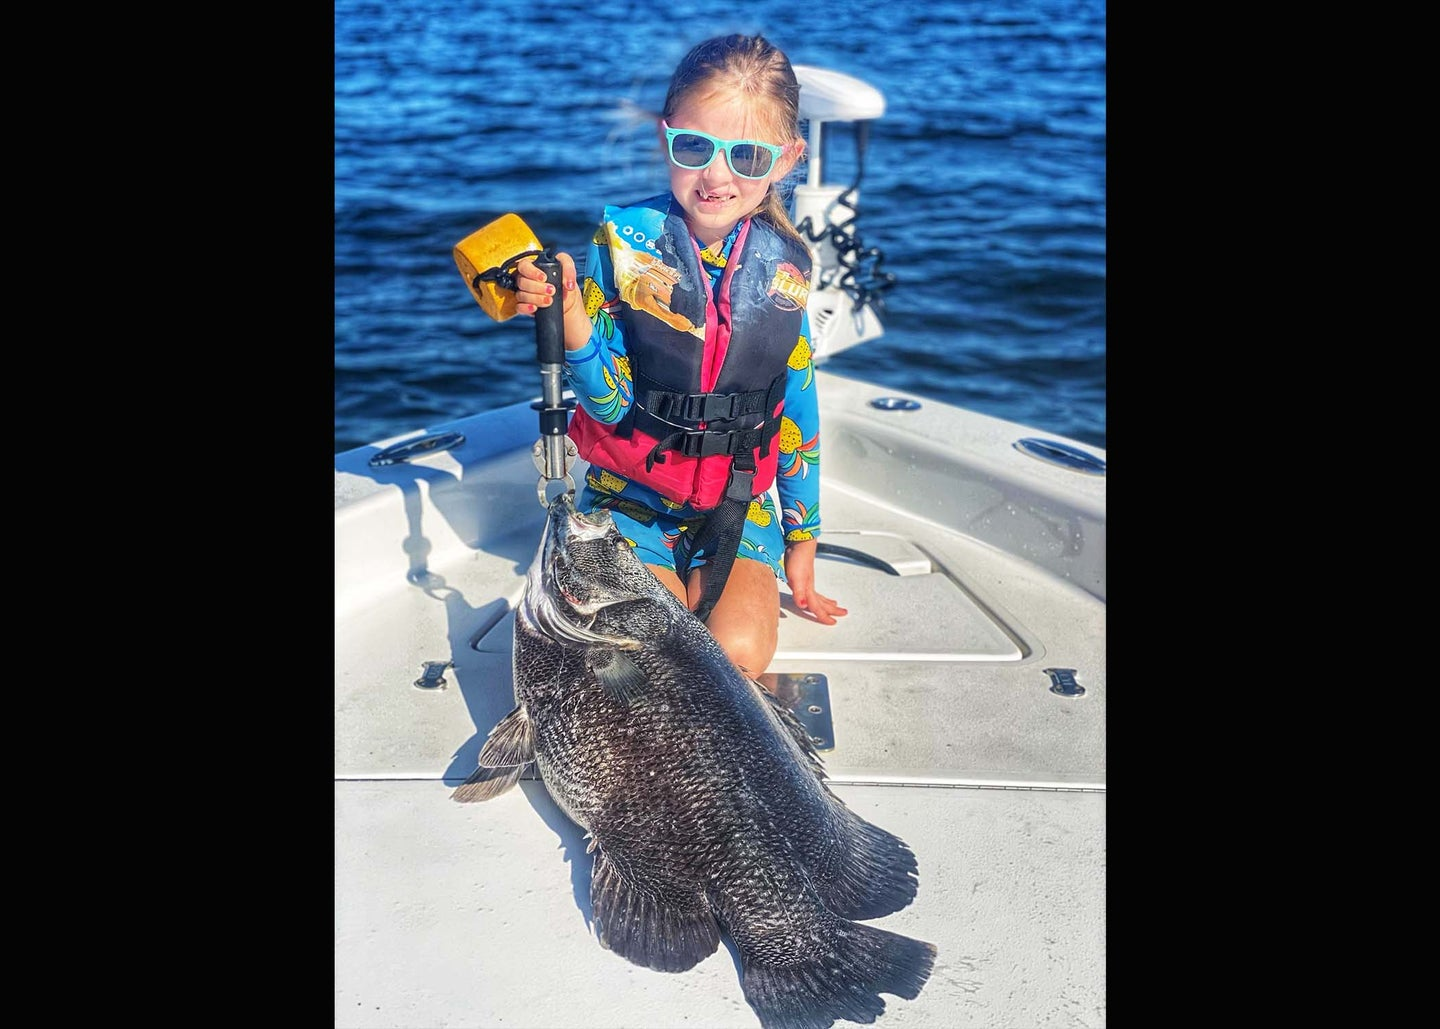 A small girl in life vests on boat with big black fish